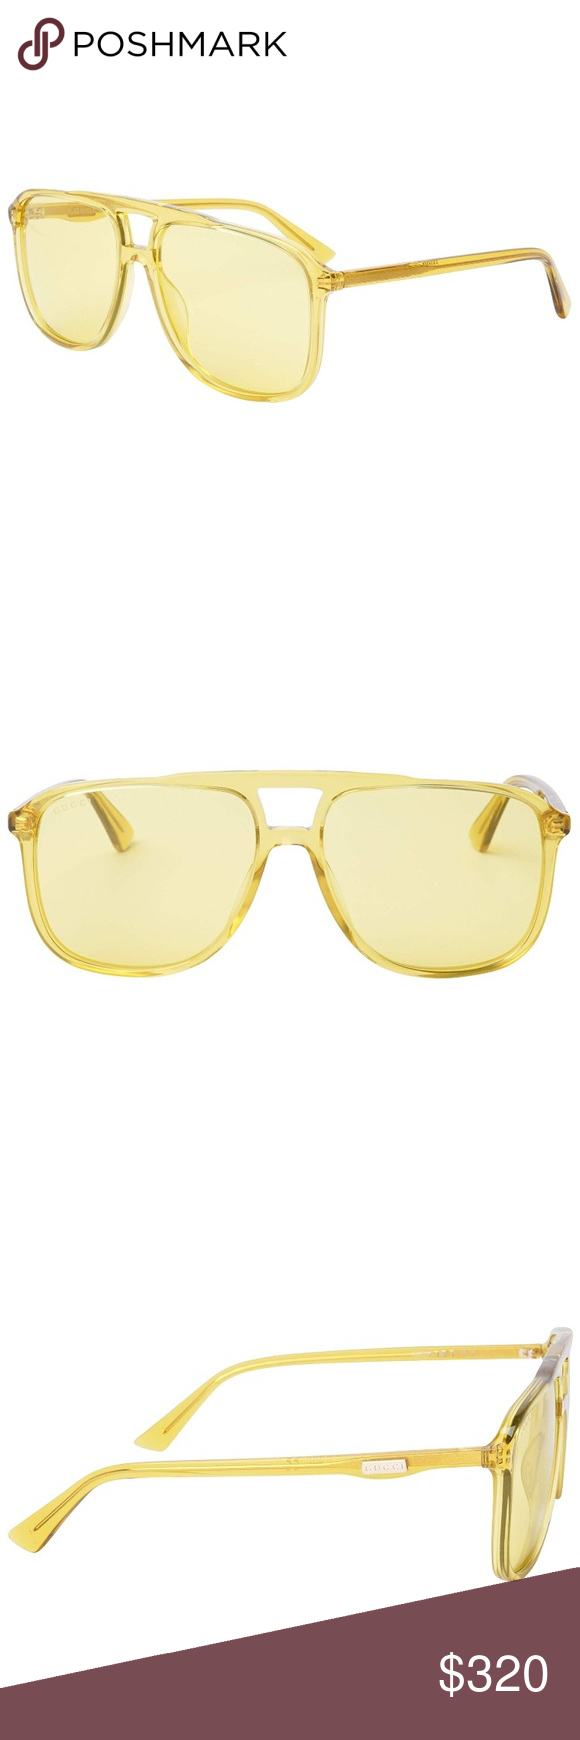 bb8ab74669 Gucci Urban Sunglasses 0262S Yellow Frame Brand new Comes with Gucci case